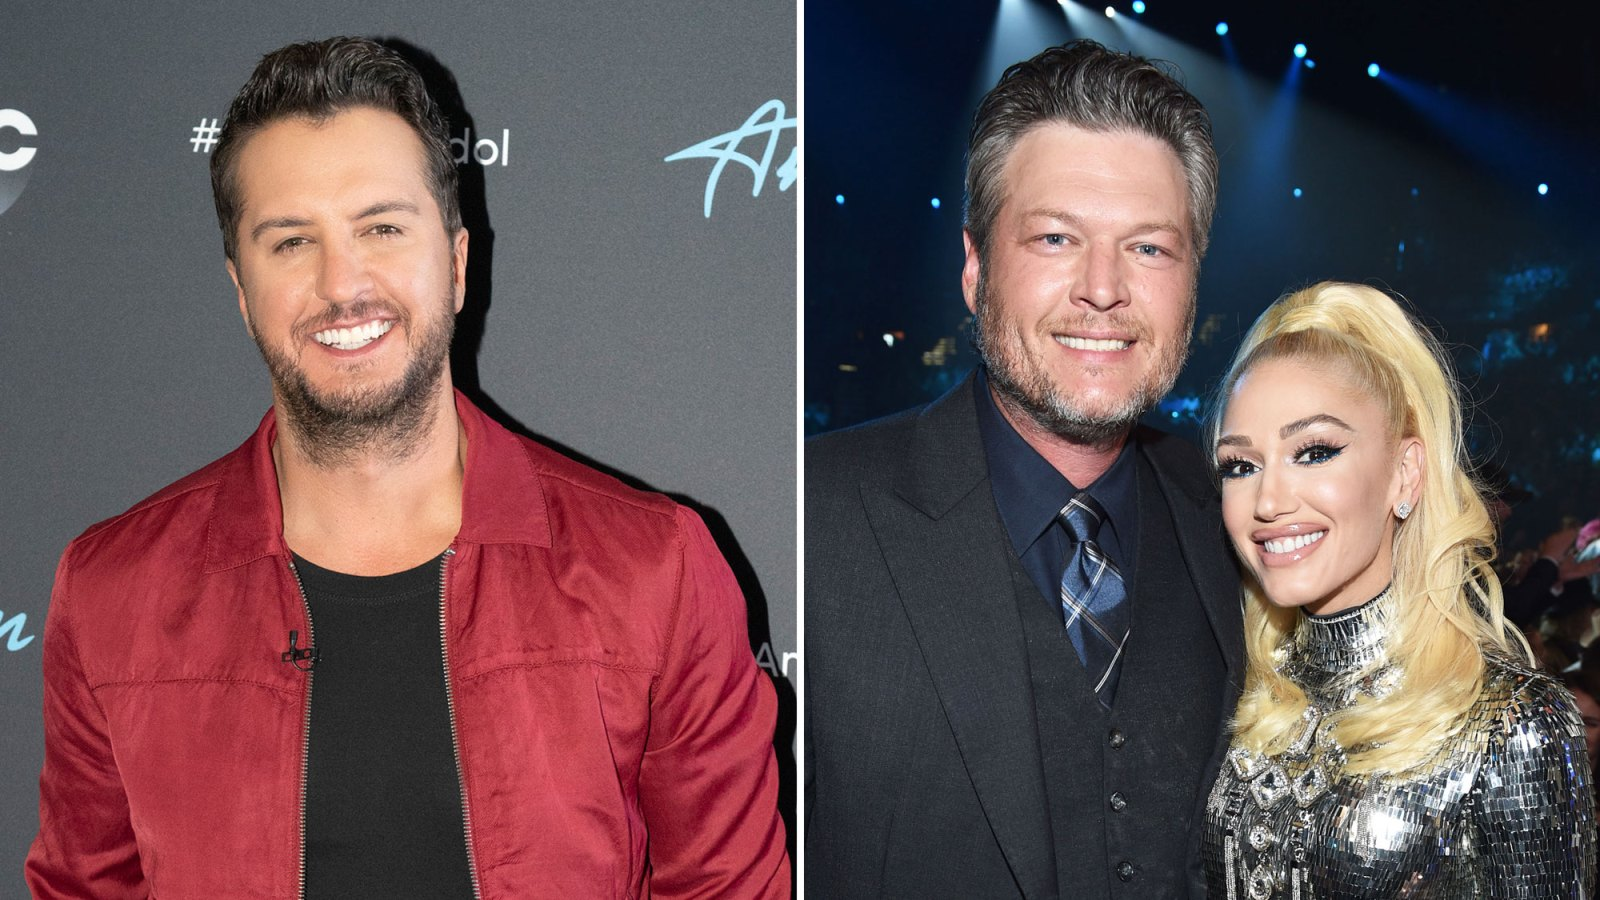 9cc887de4b Luke Bryan on Joining Blake Shelton, Gwen Stefani's Dinner Date